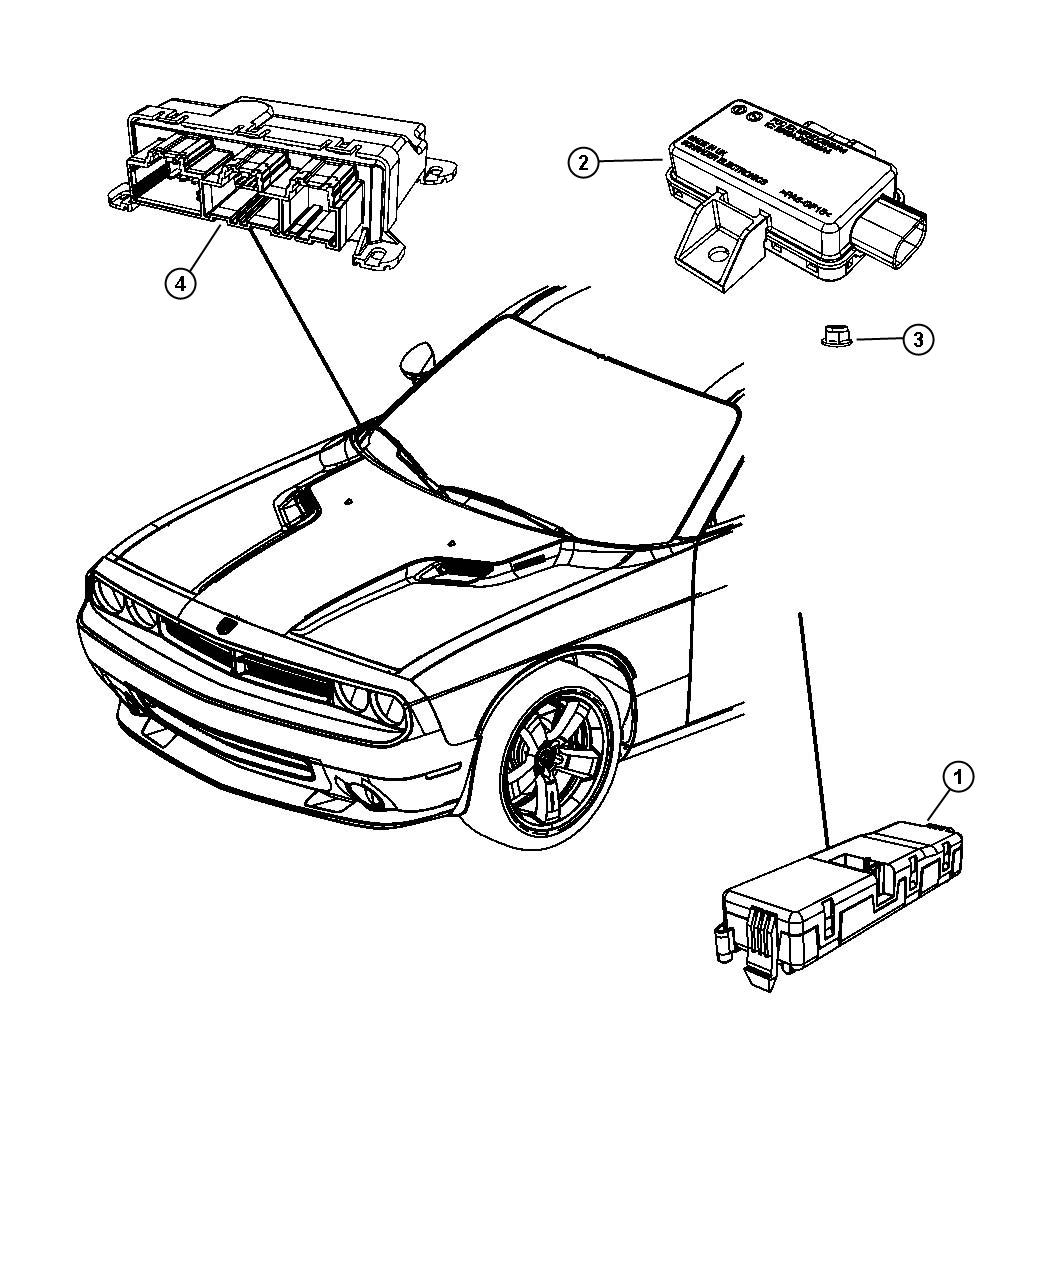 Dodge Durango Parts Diagram Tire